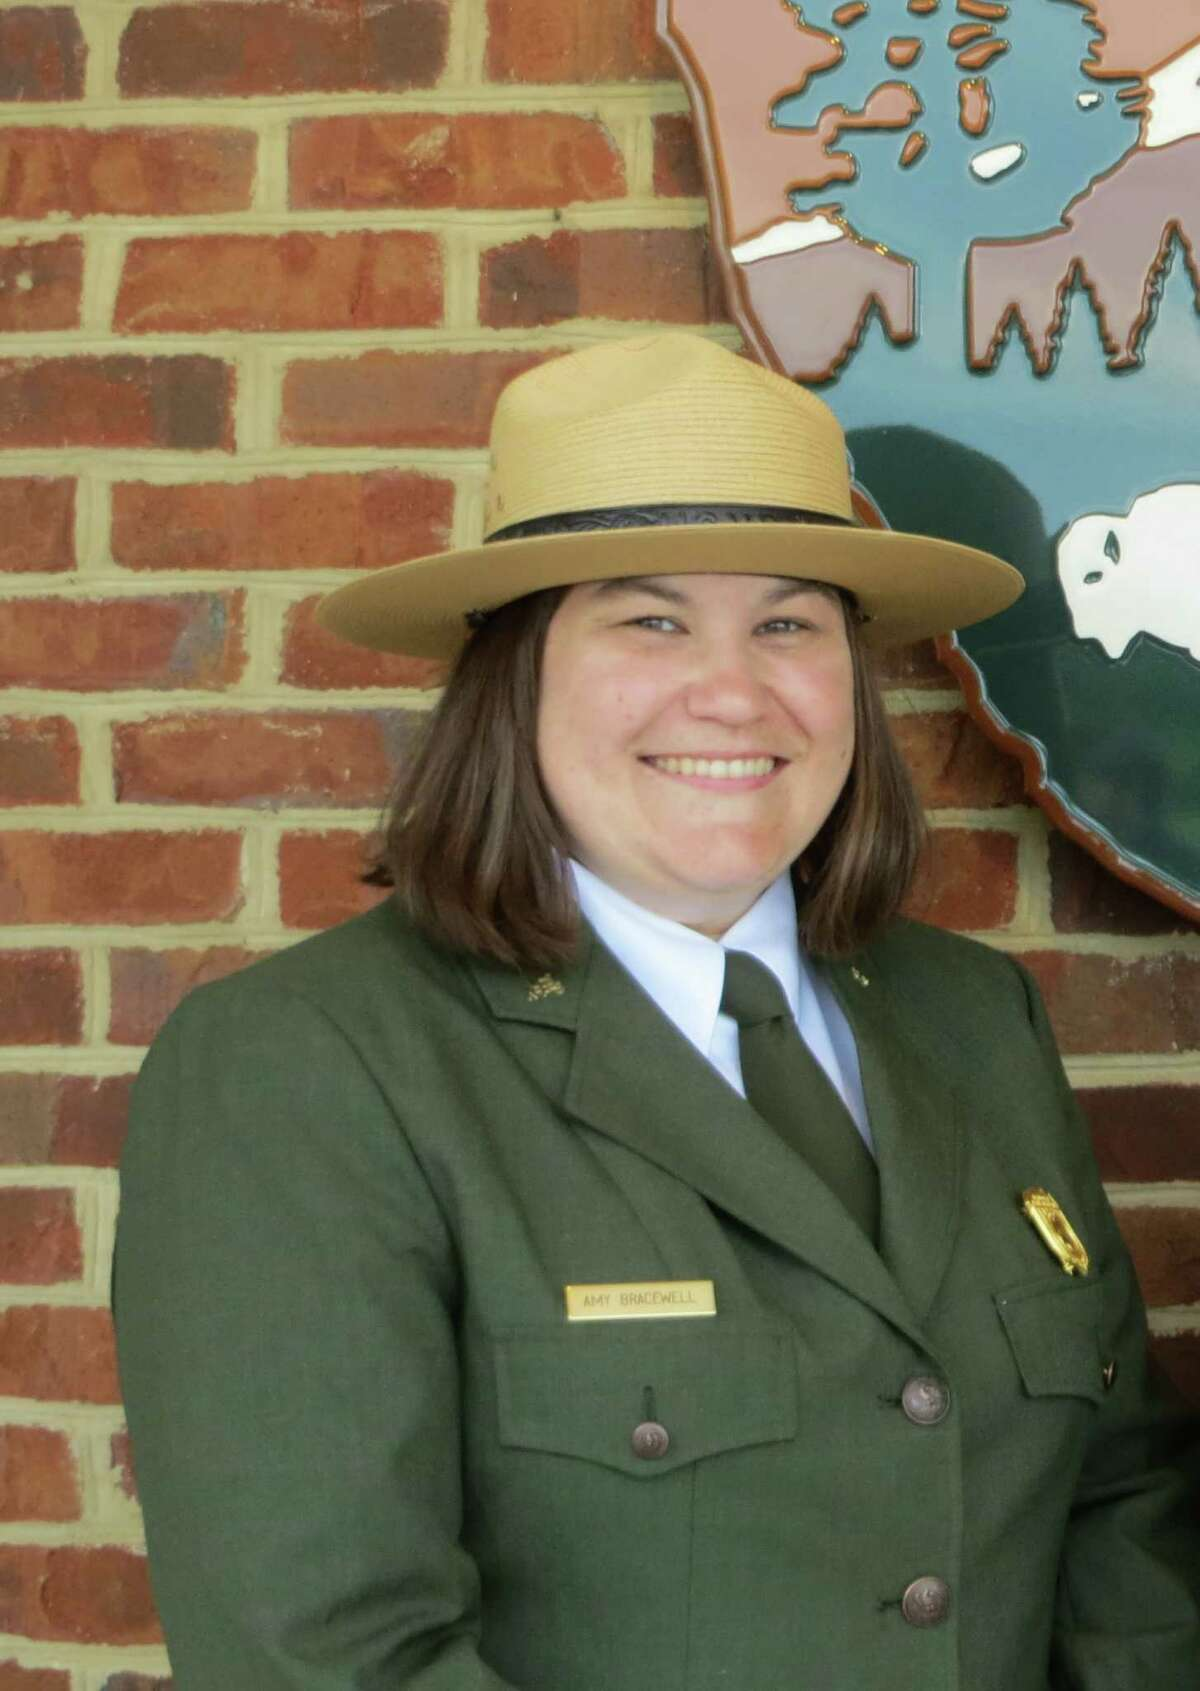 Amy Bracewell, superintendent of the Saratoga Battlefield site.